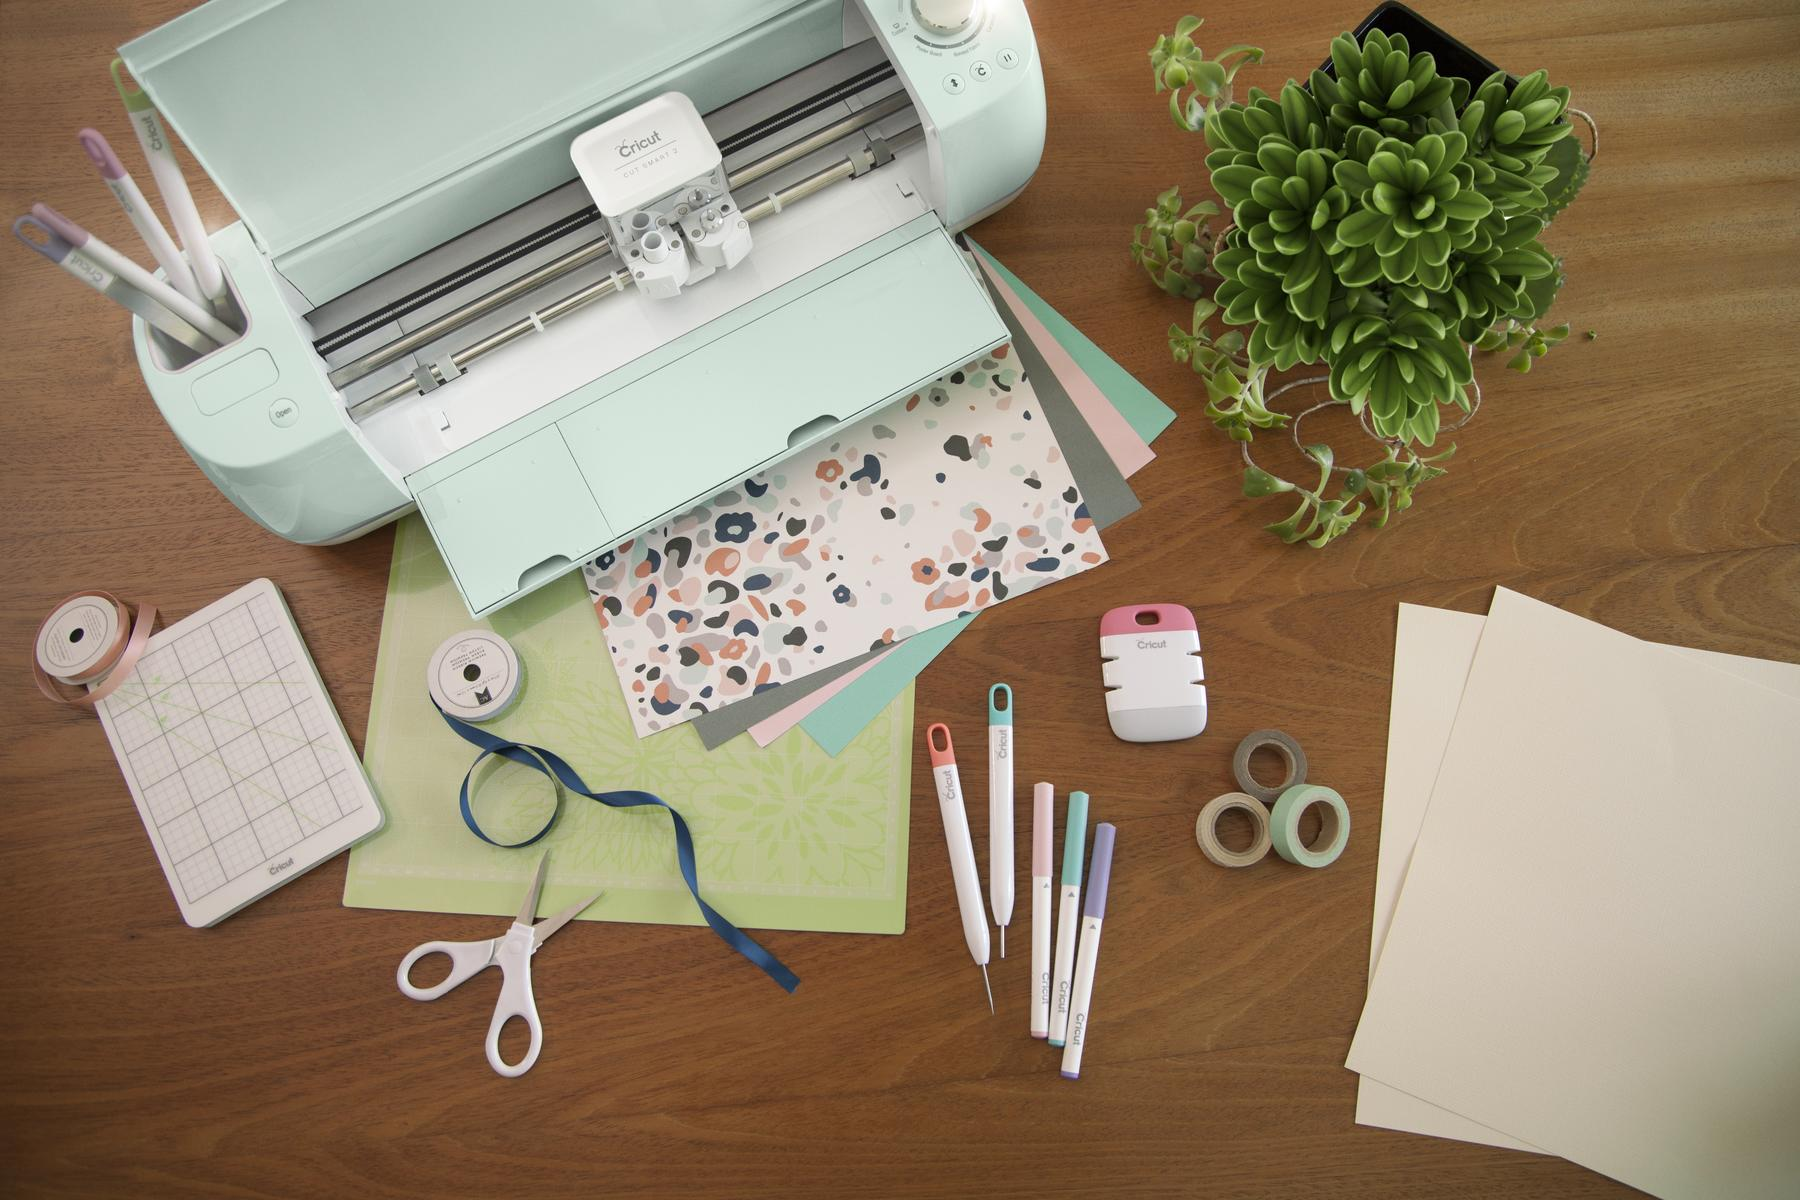 Family Technology Cricut smart-cutting machine